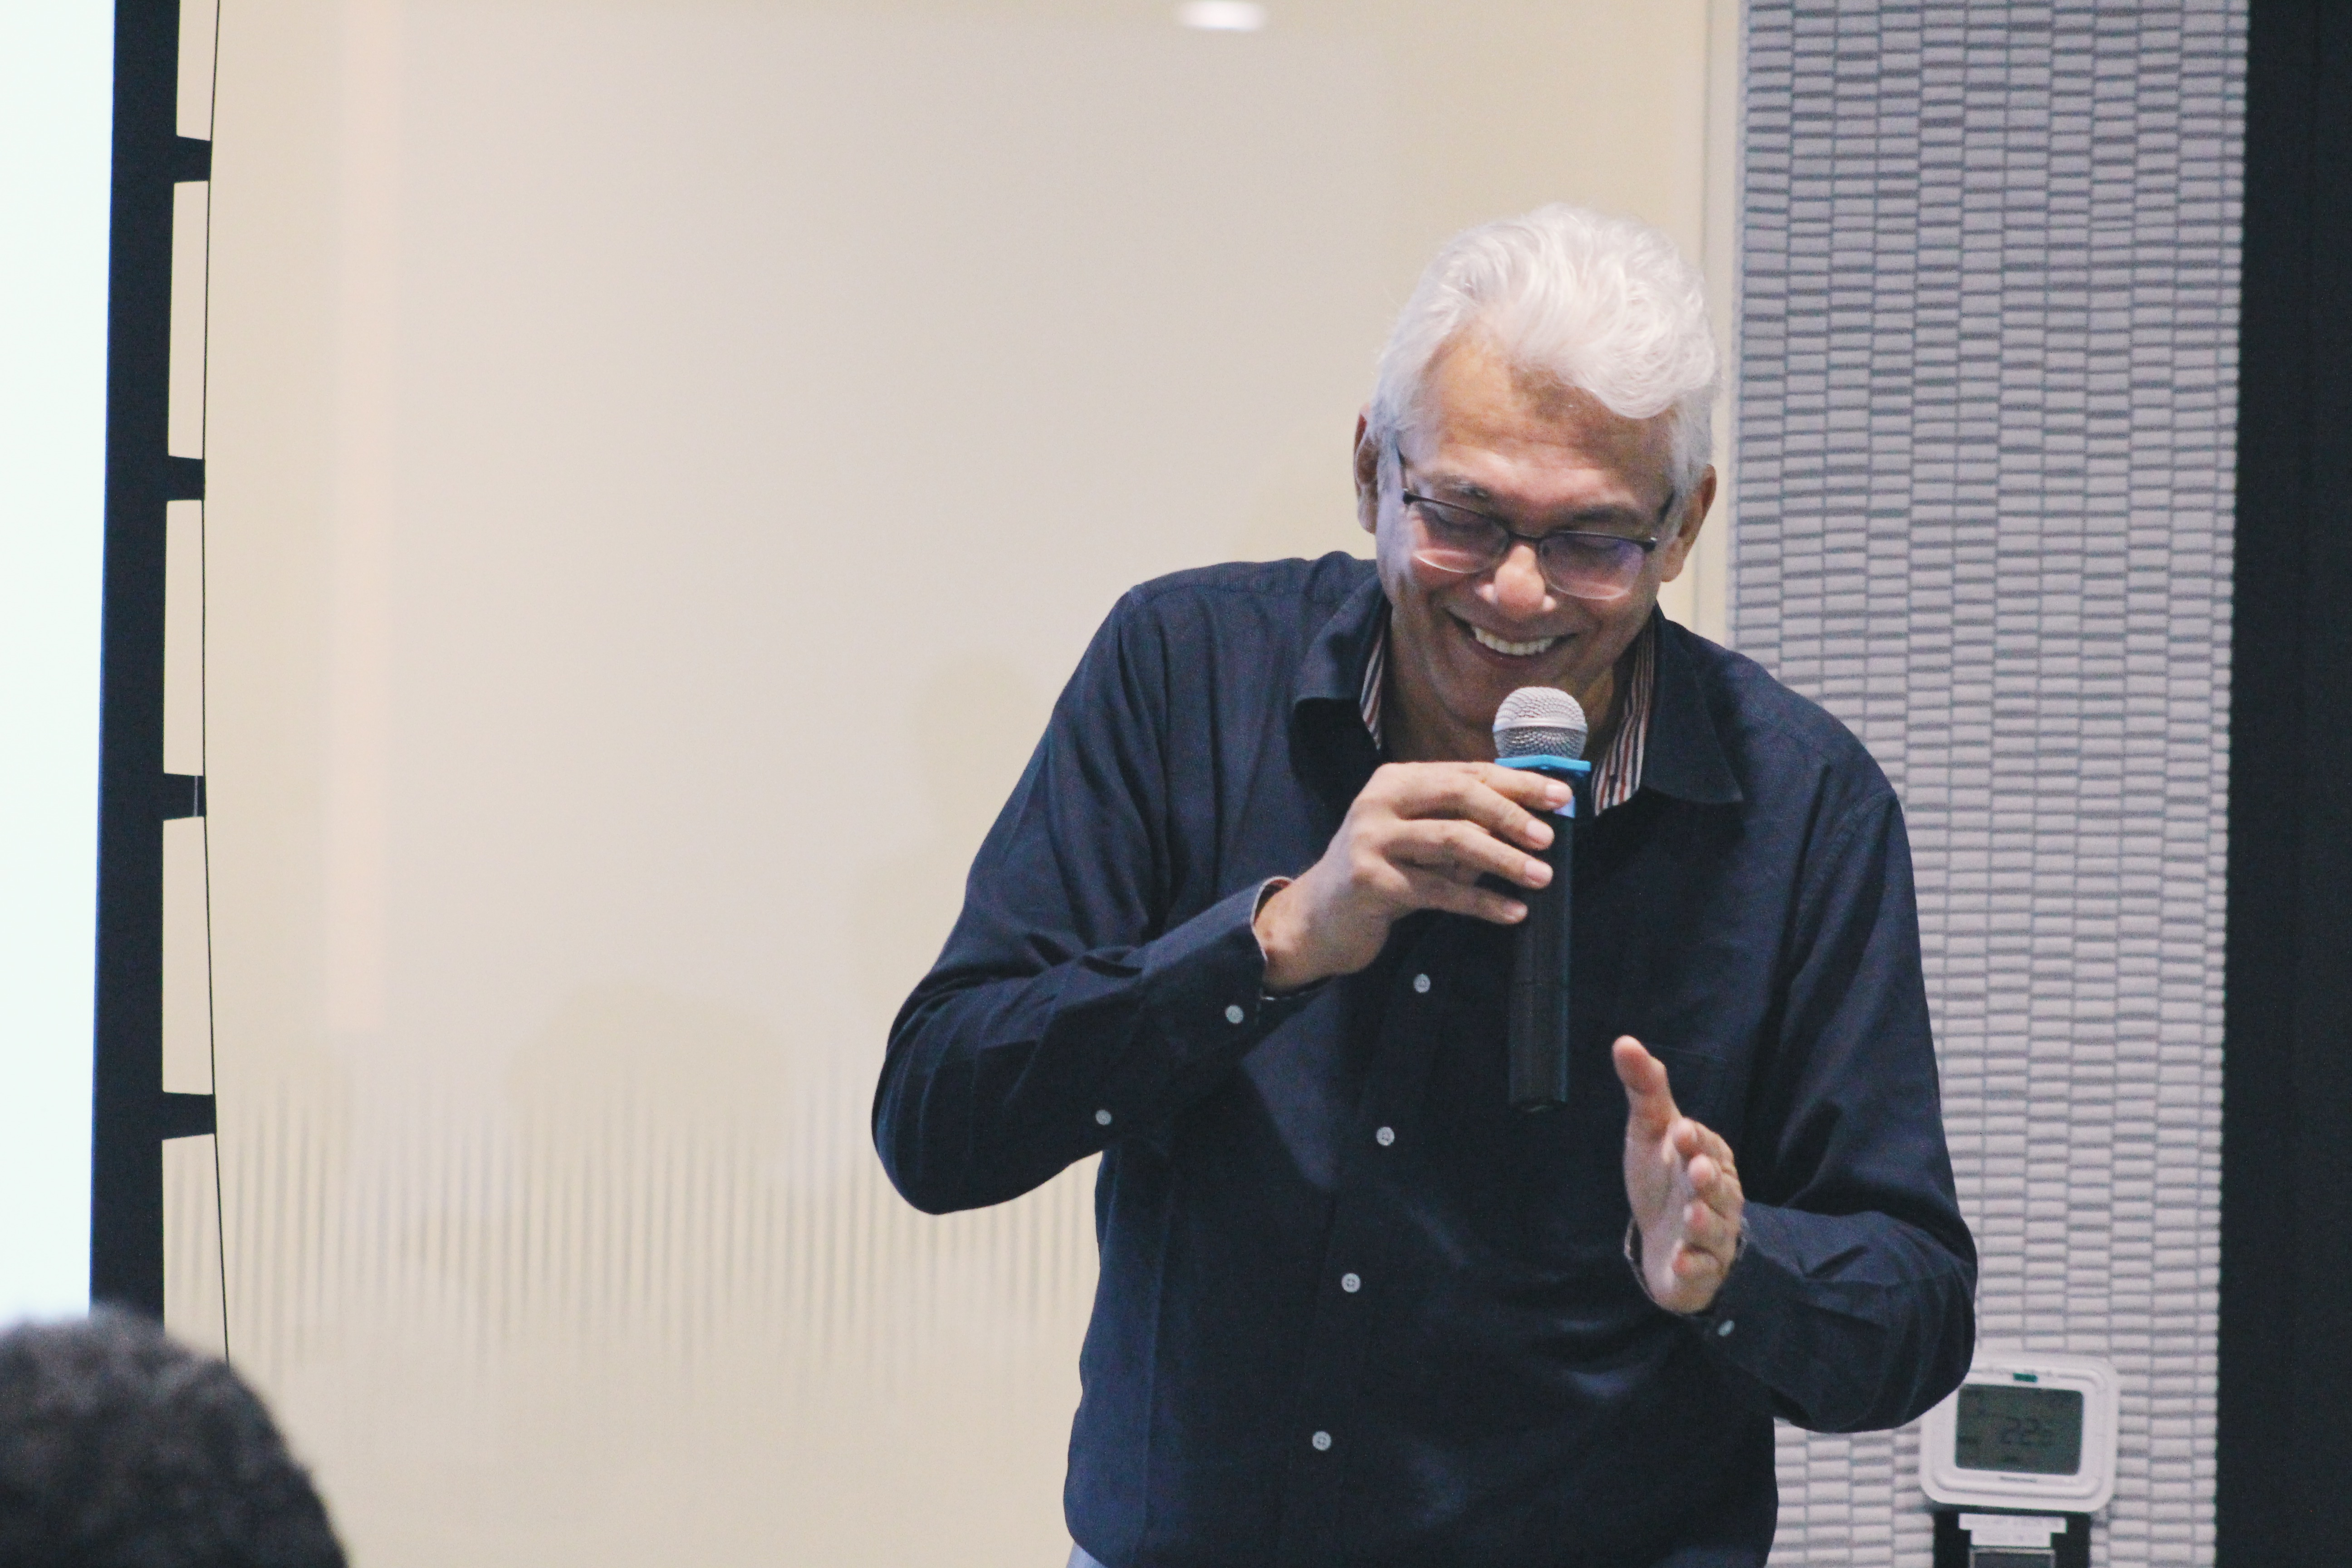 India's leading sports media man, Joy Bhattacharjya, was back in town as quiz master for Mind Amaze for the fourth time. Photo: Connected to India